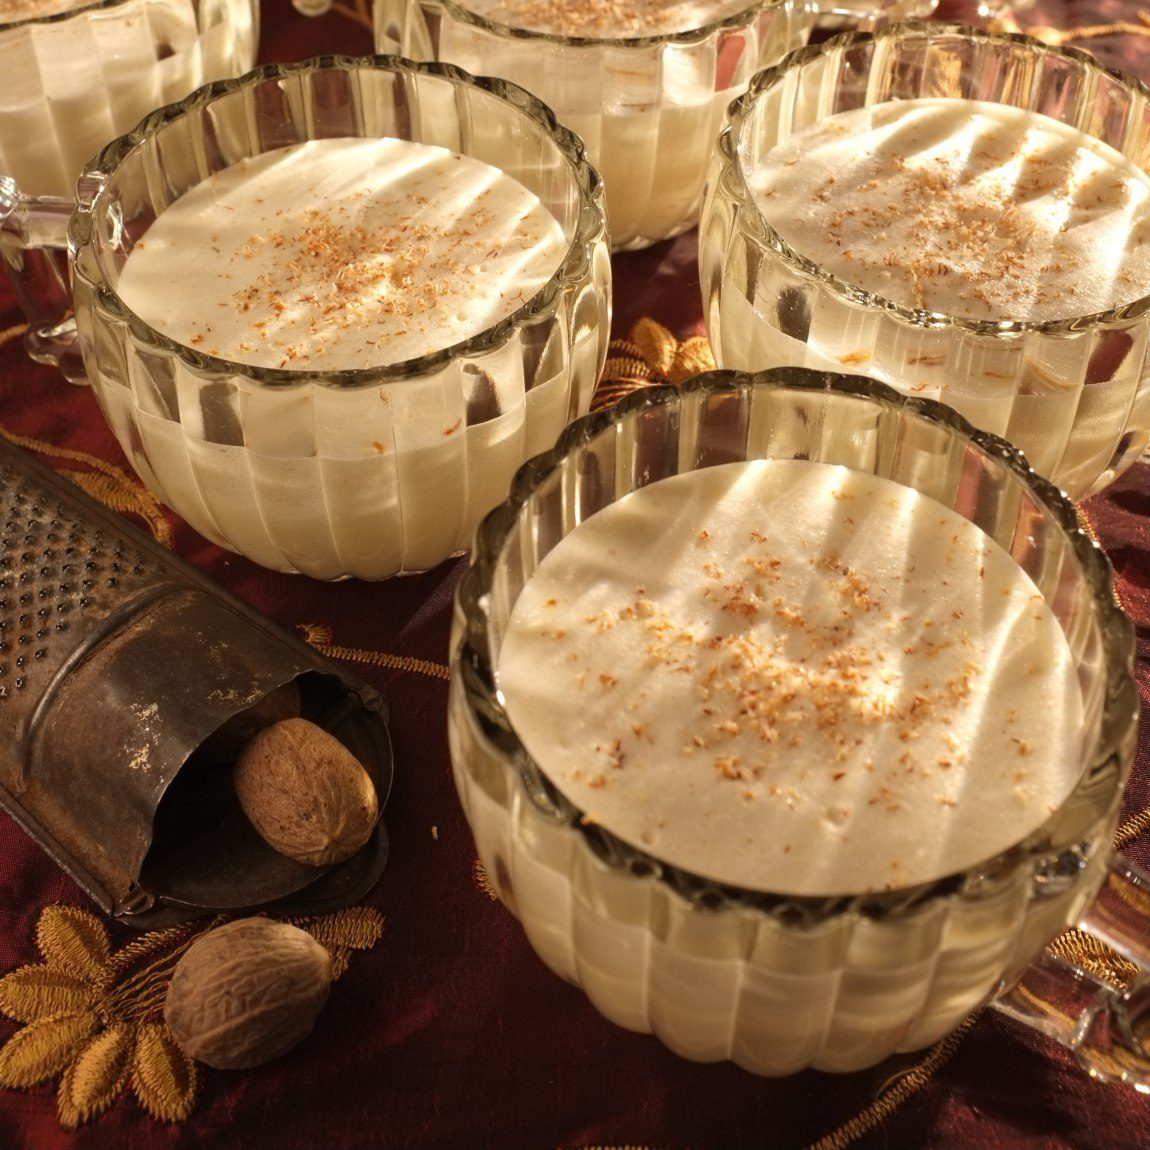 Classic eggnog in glass goblets topped with freshly grated nutmeg.